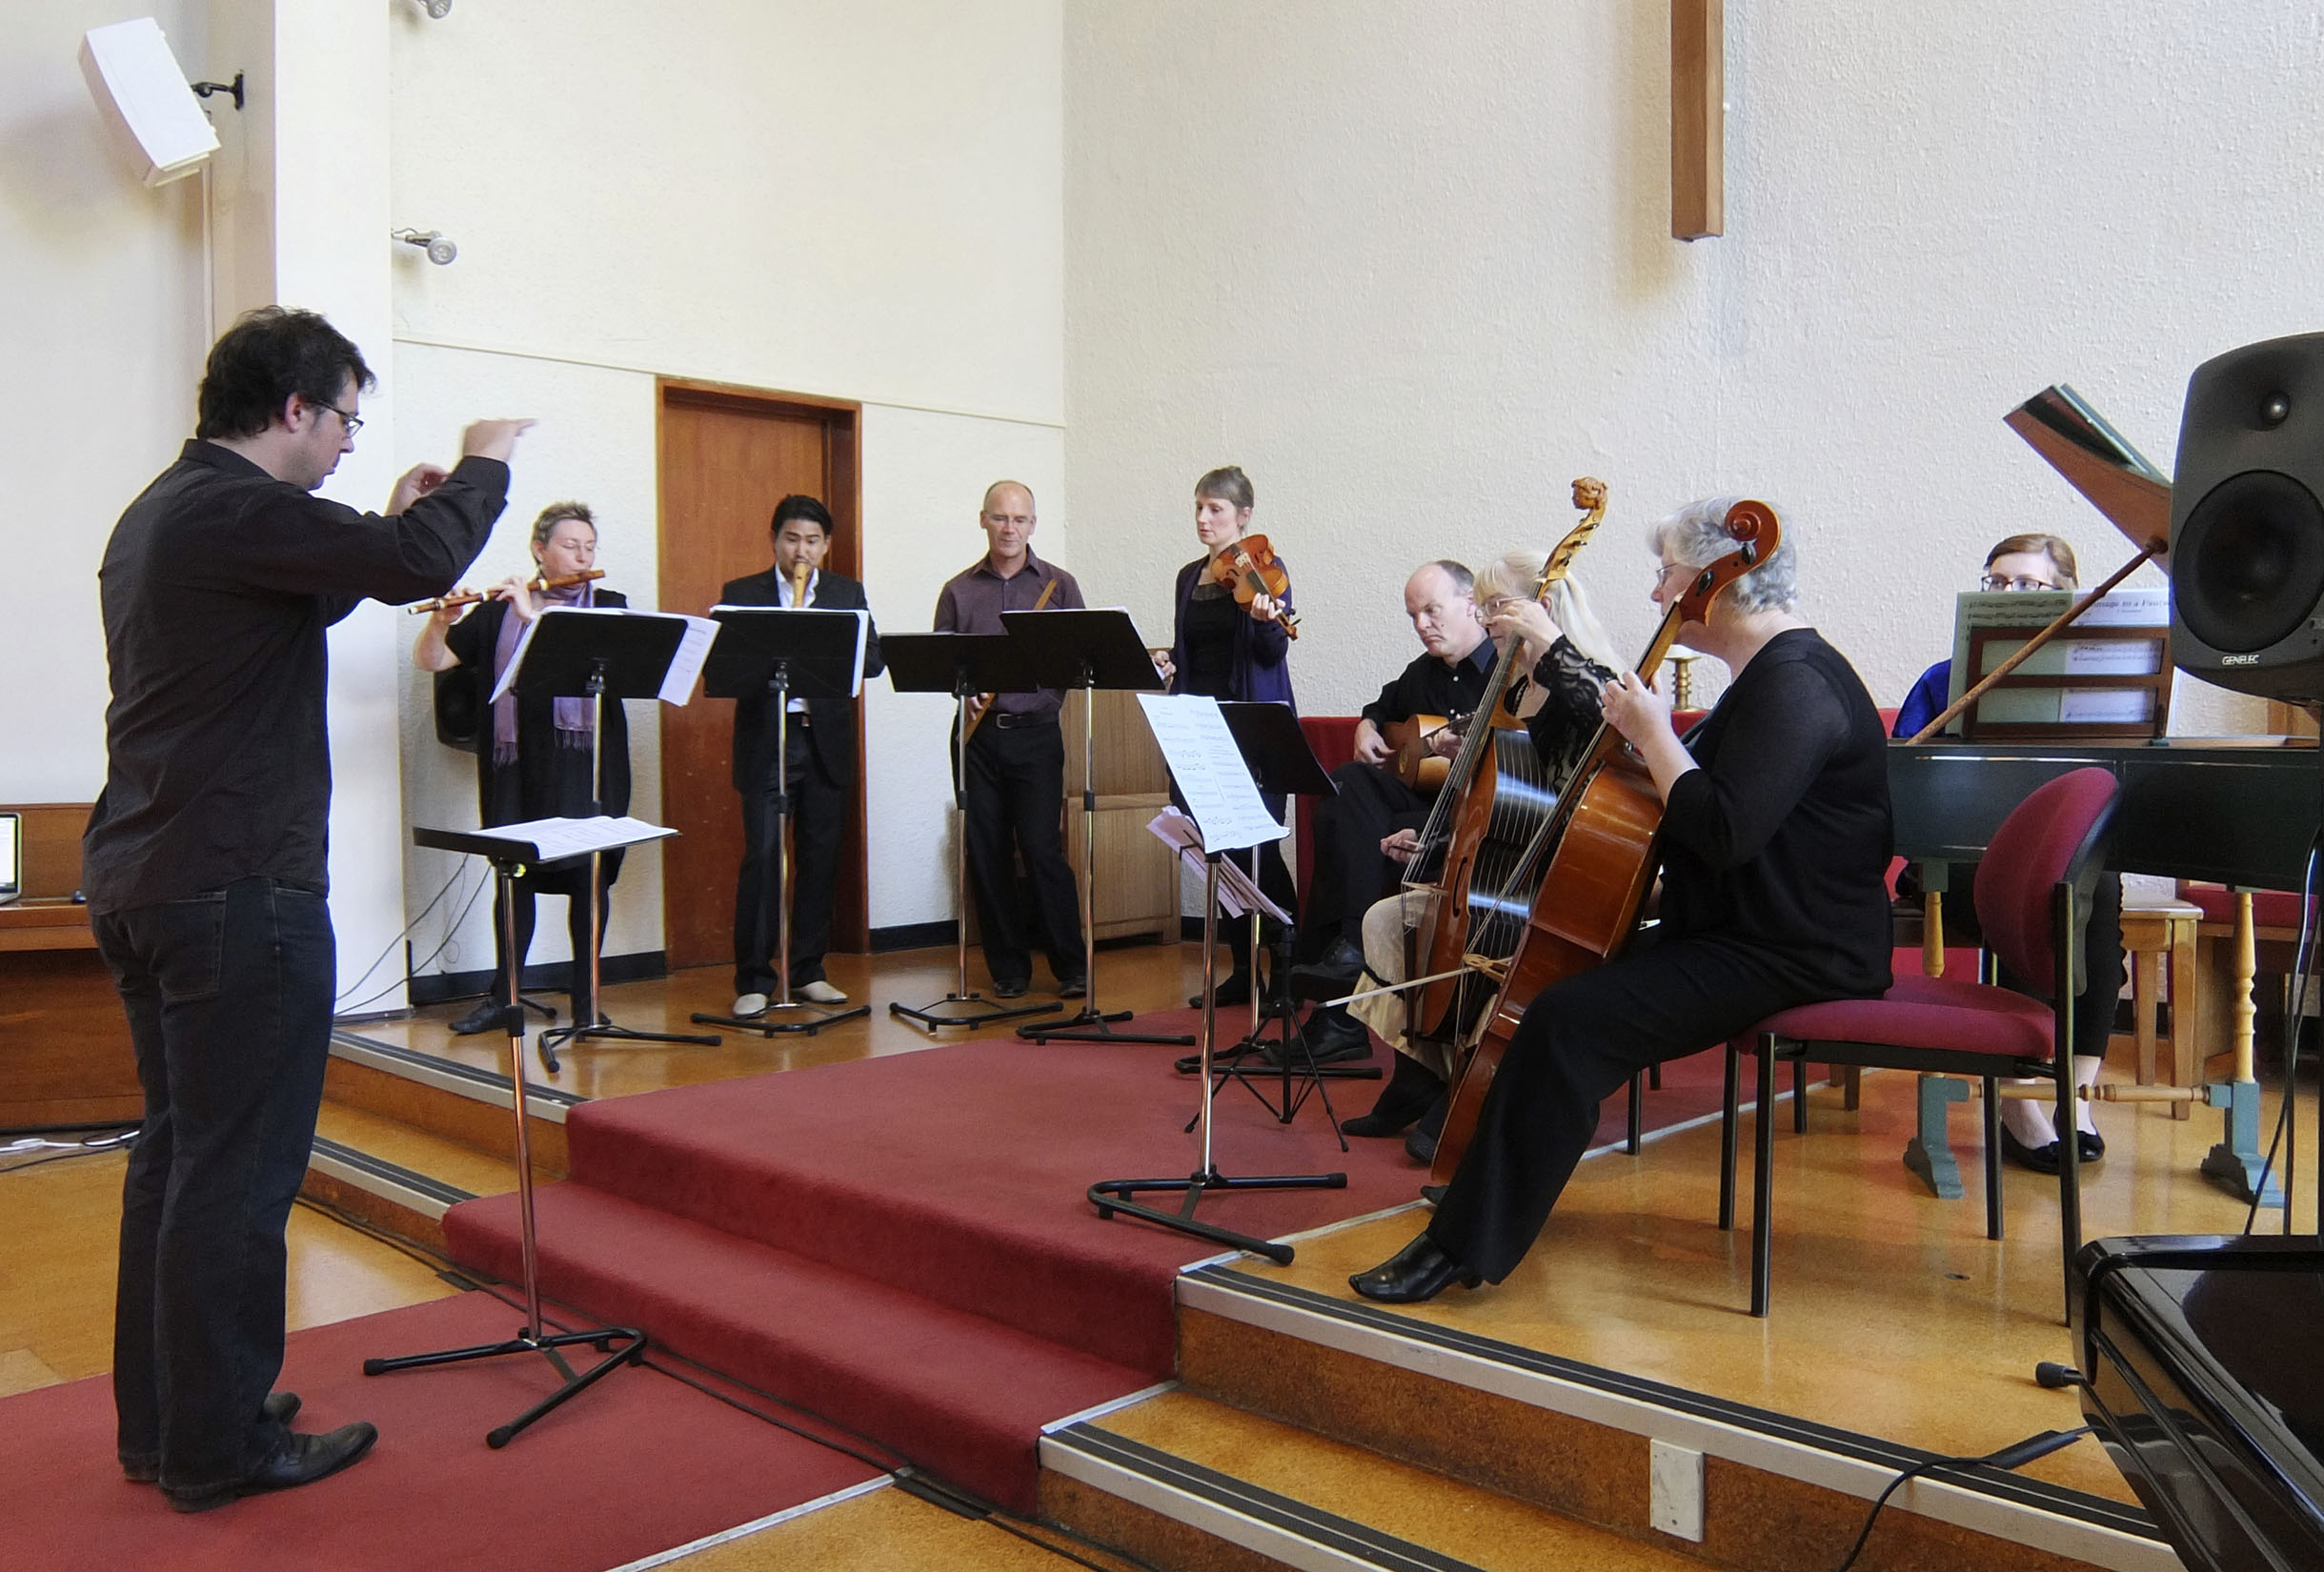 New_Music_for_Old_Instruments_20141108_Auckland_NZ_Julius_Margan_2.jpg